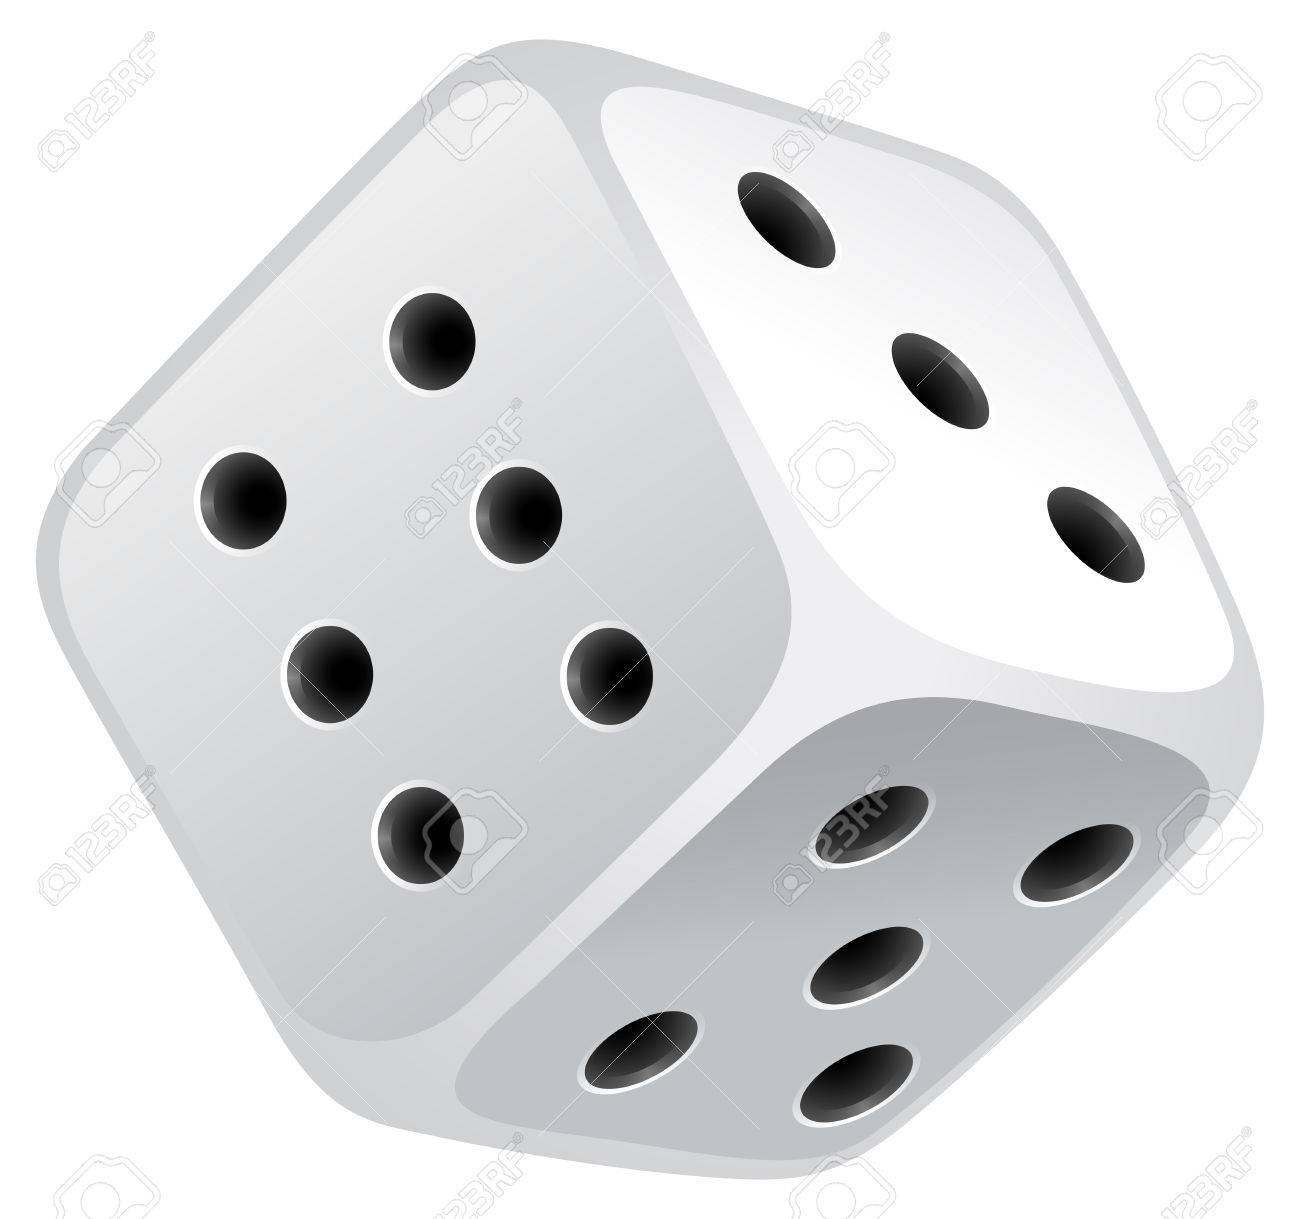 Single dice with black dots Stock Vector - 42358833